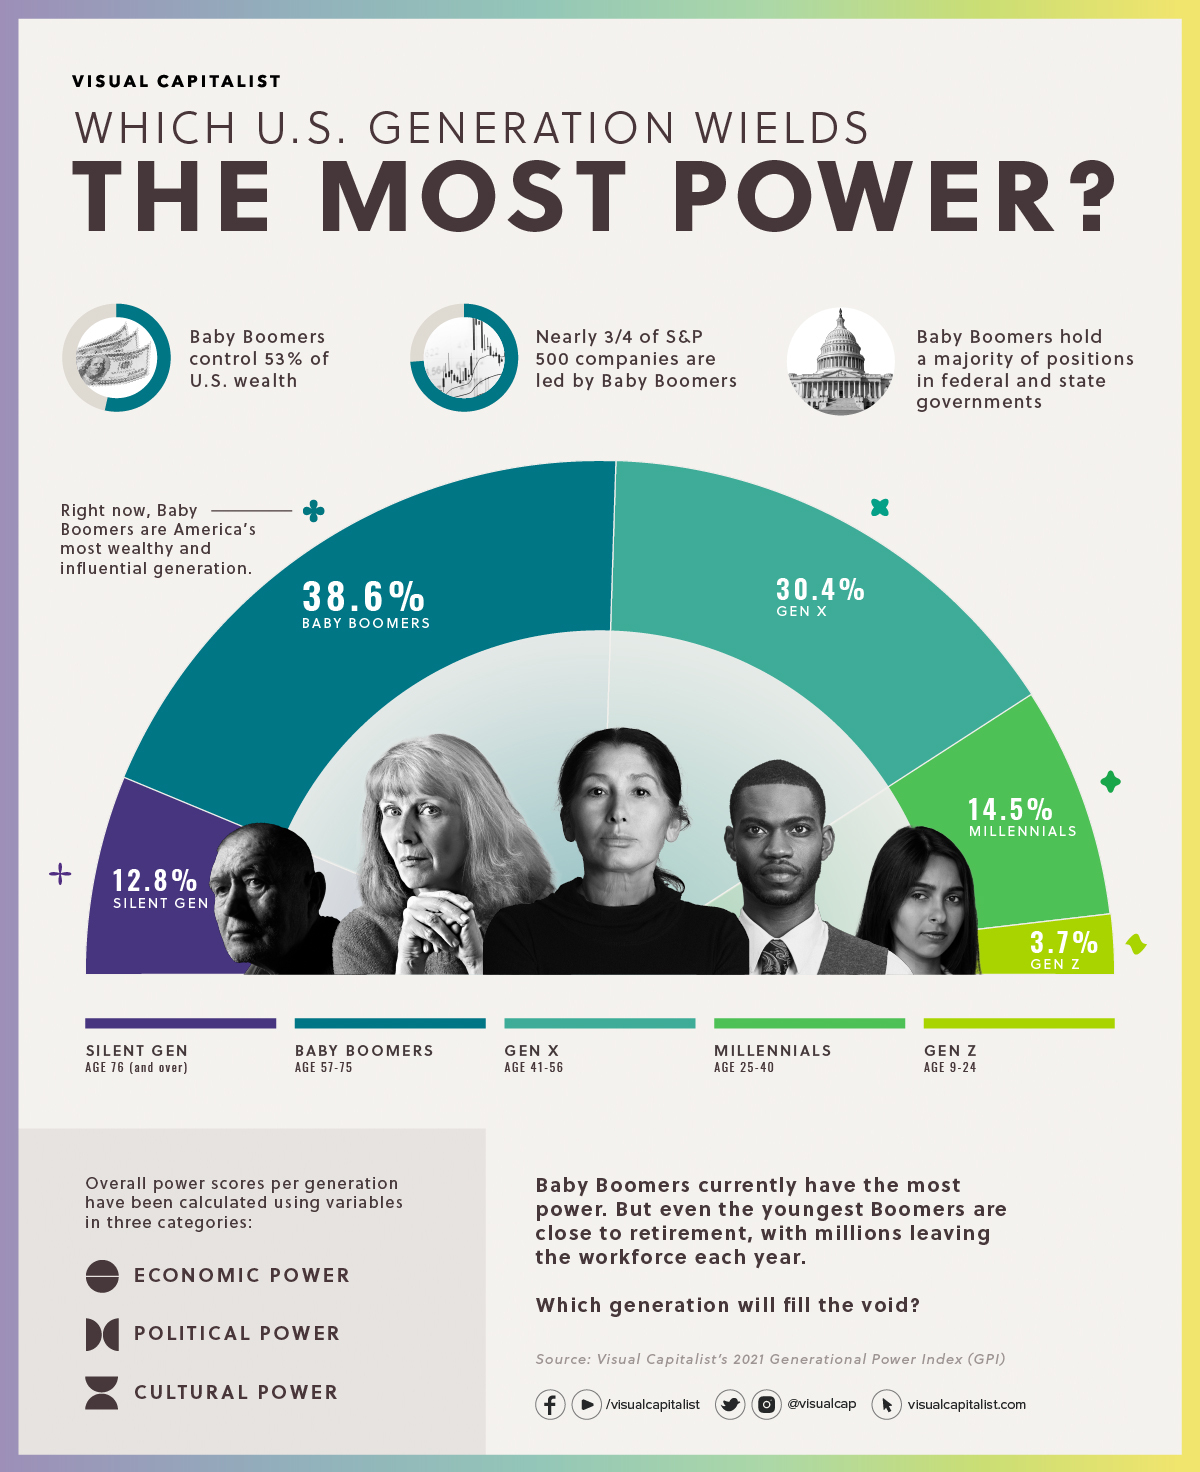 Which U.S. Generation has the Most Power and Influence?